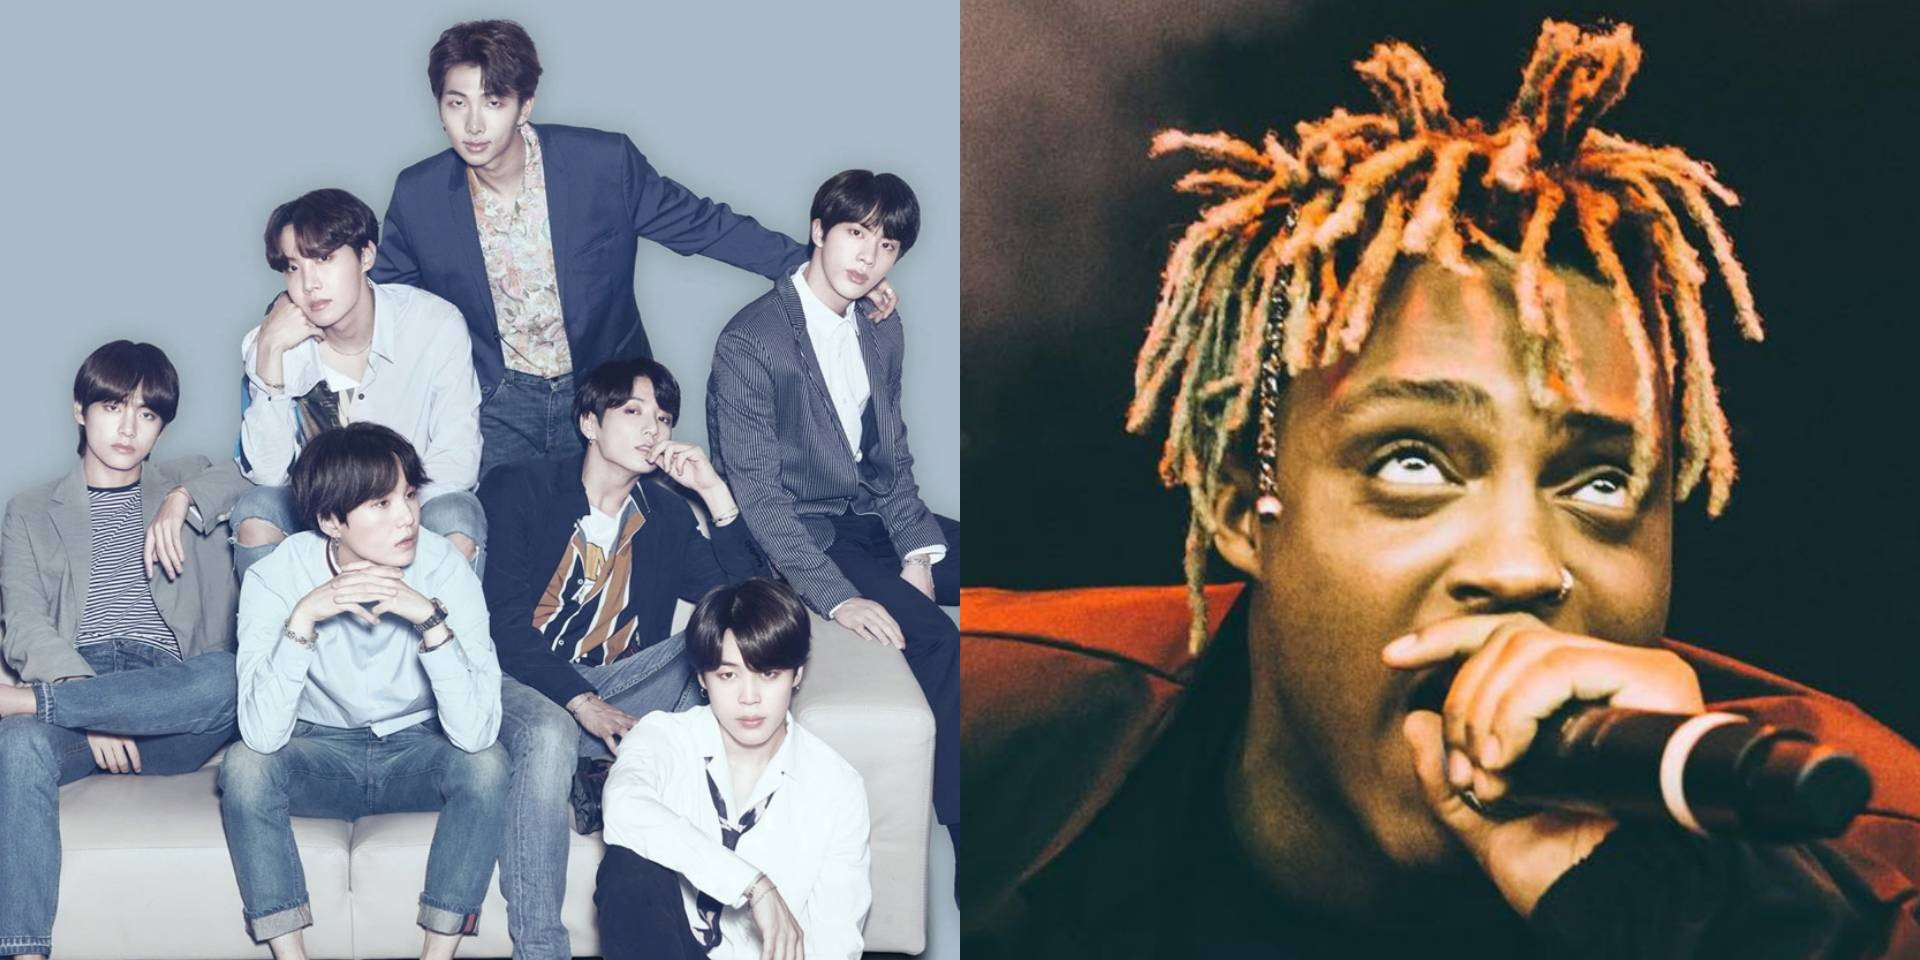 BTS teams up with Juice WRLD for new single, 'All Night' – listen